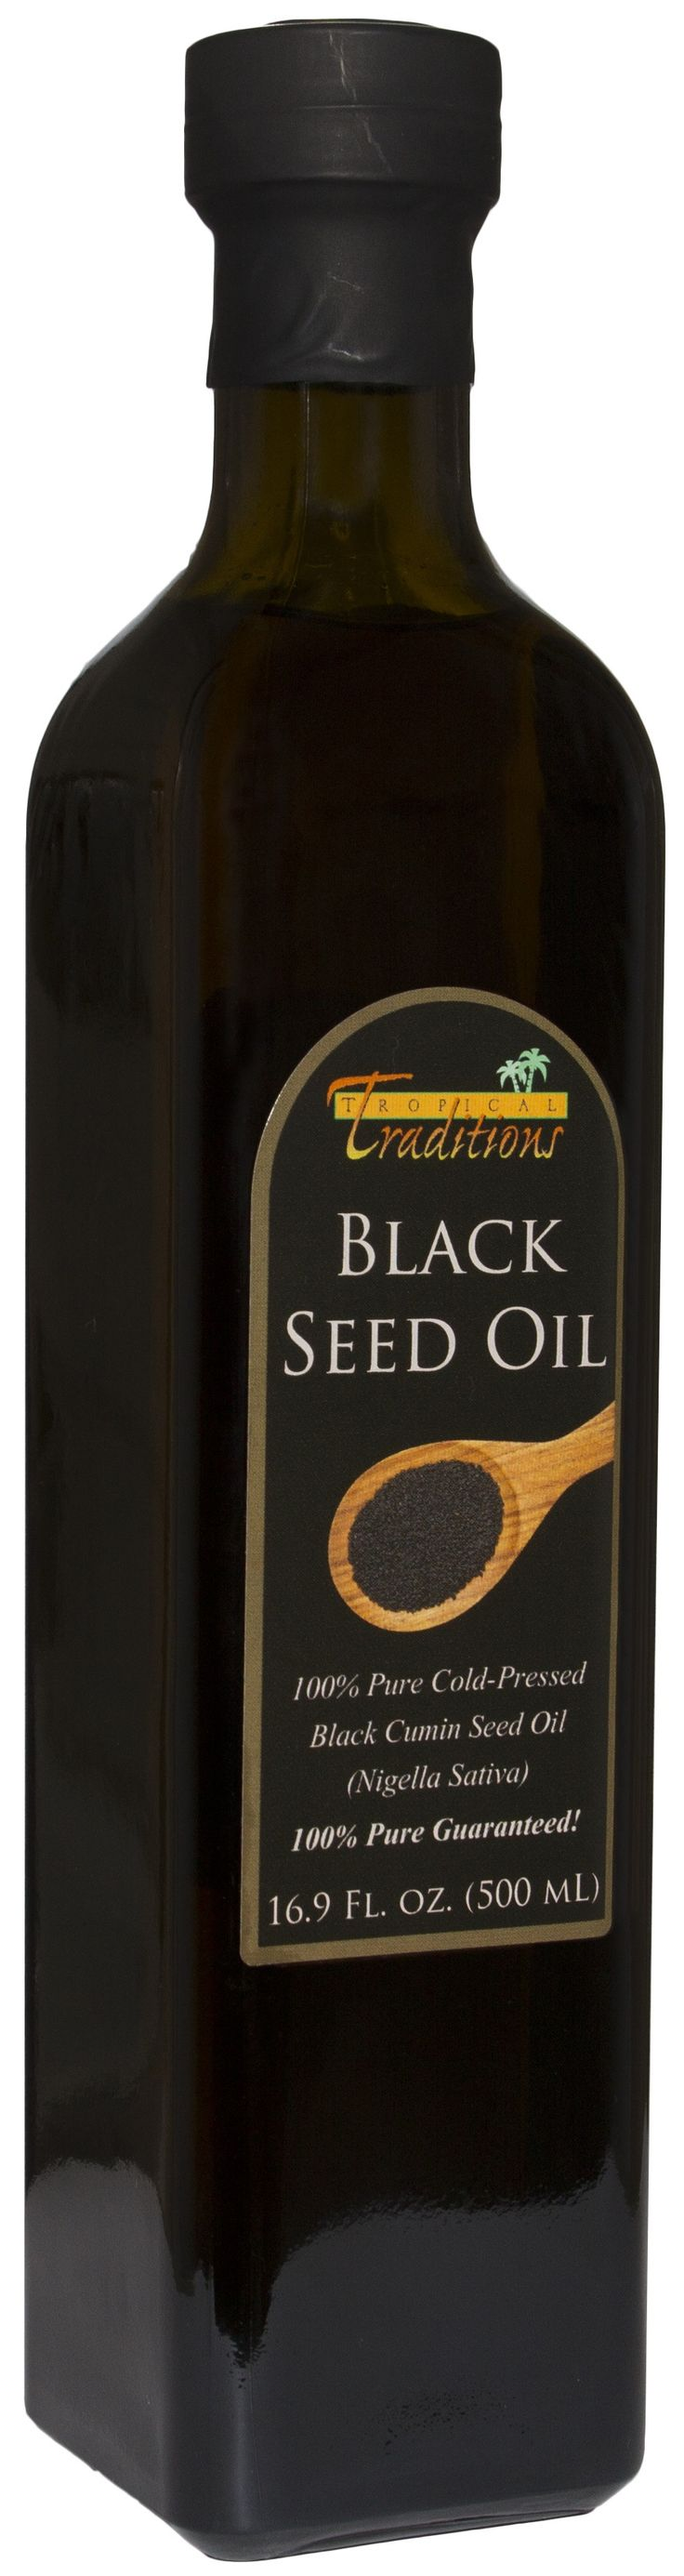 Tropical Traditions Introduces Black Cumin Seed Oil to its Product Line